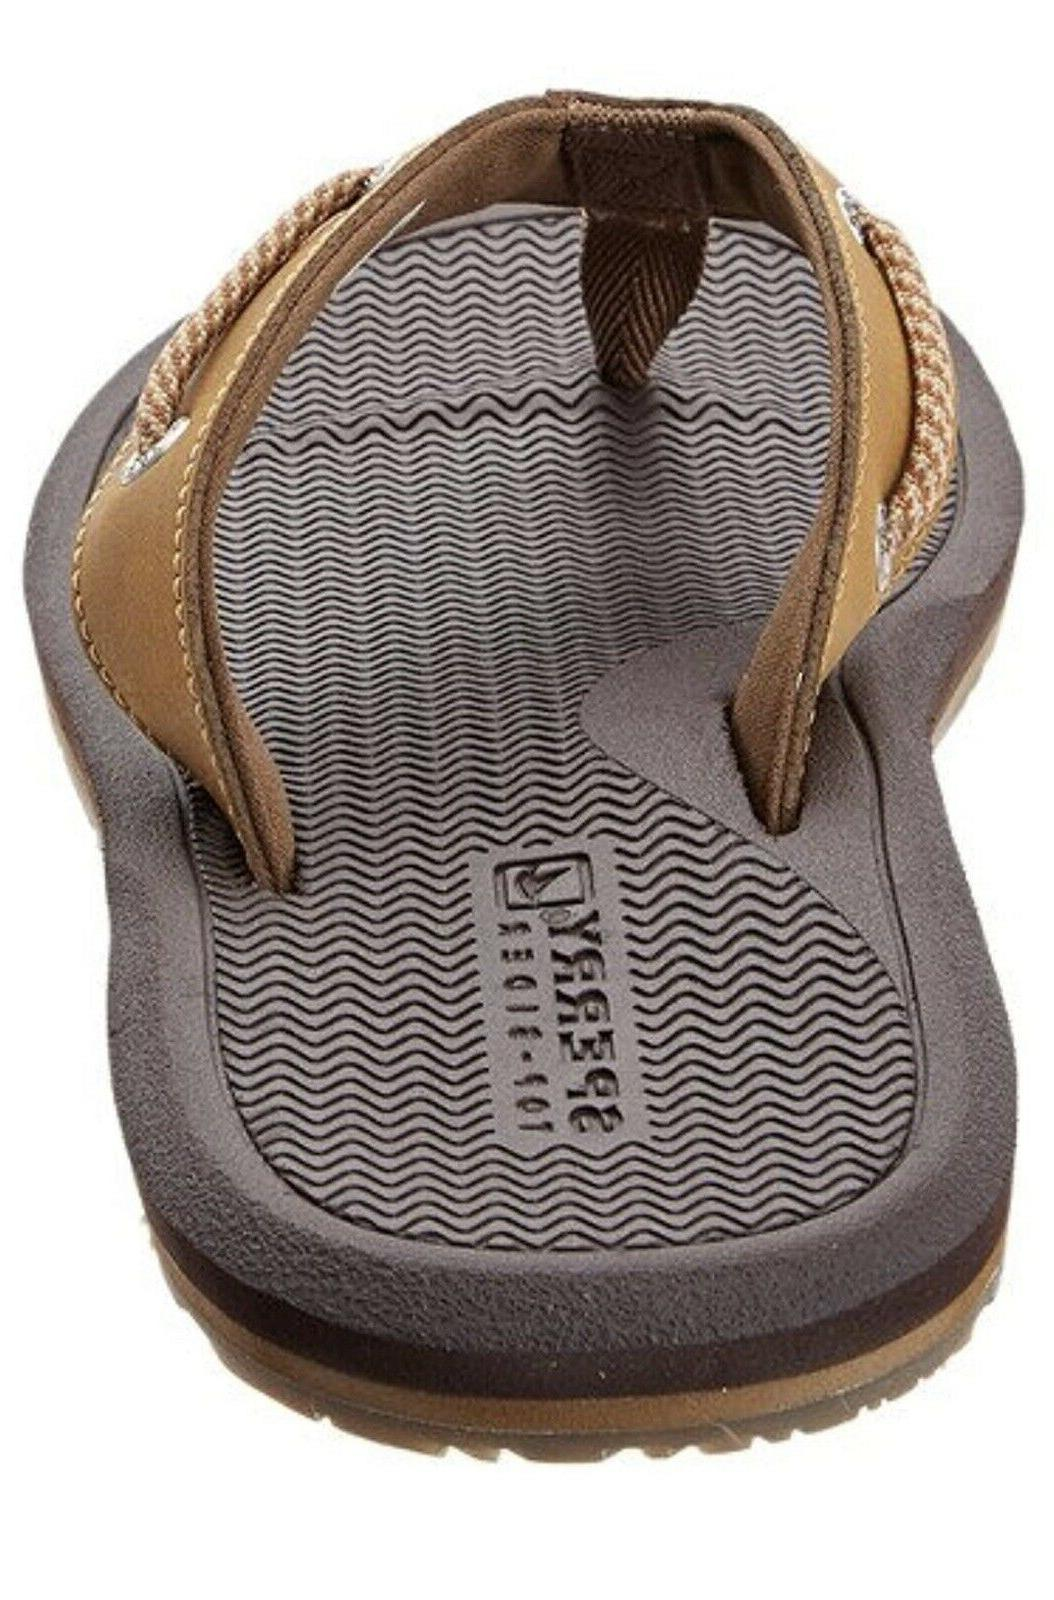 Sperry, Sandal Nautical Flip Flops